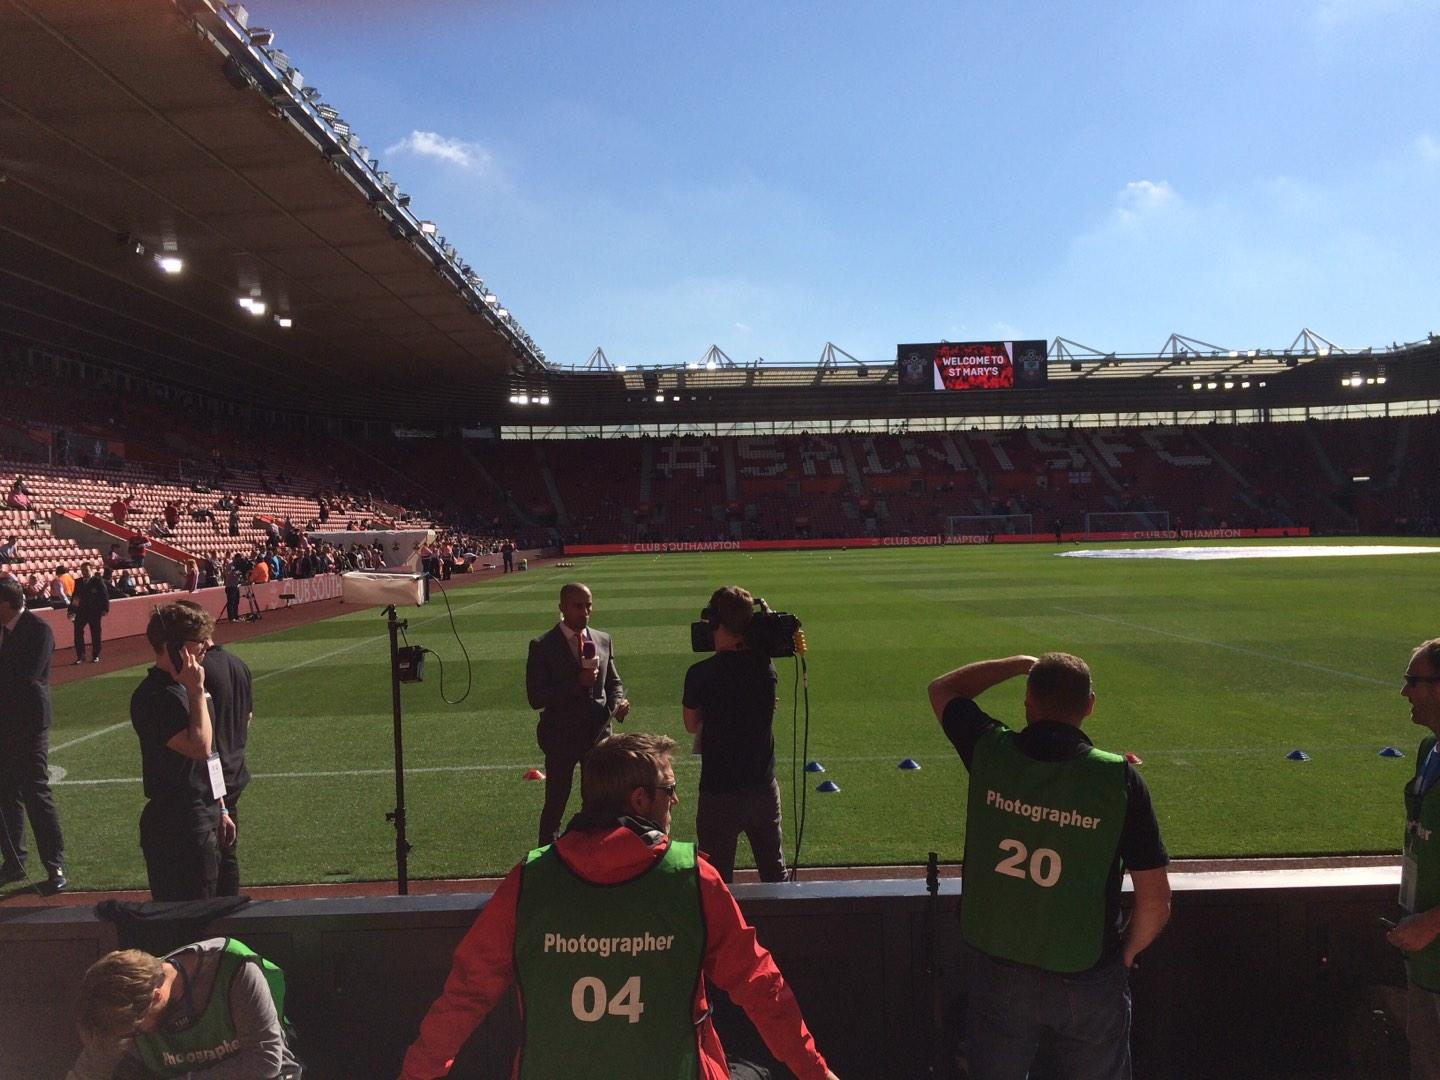 St Mary's Stadium Section 45 Row C Seat 1173